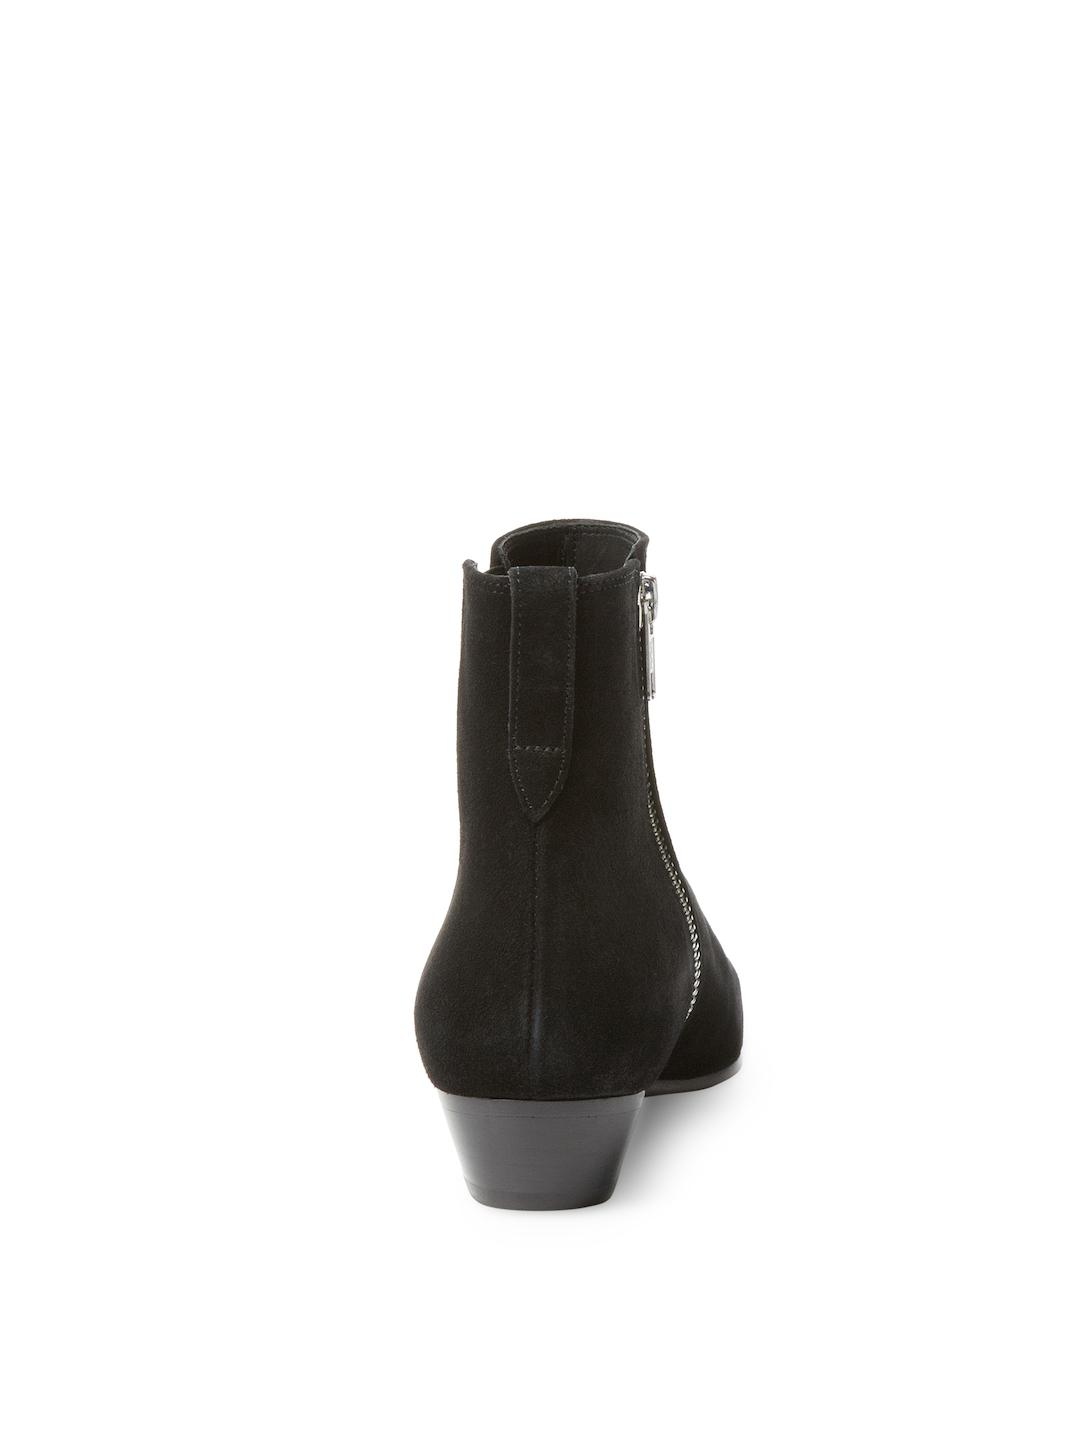 Isabel Marant Patsha Solid Leather Bootie in Black